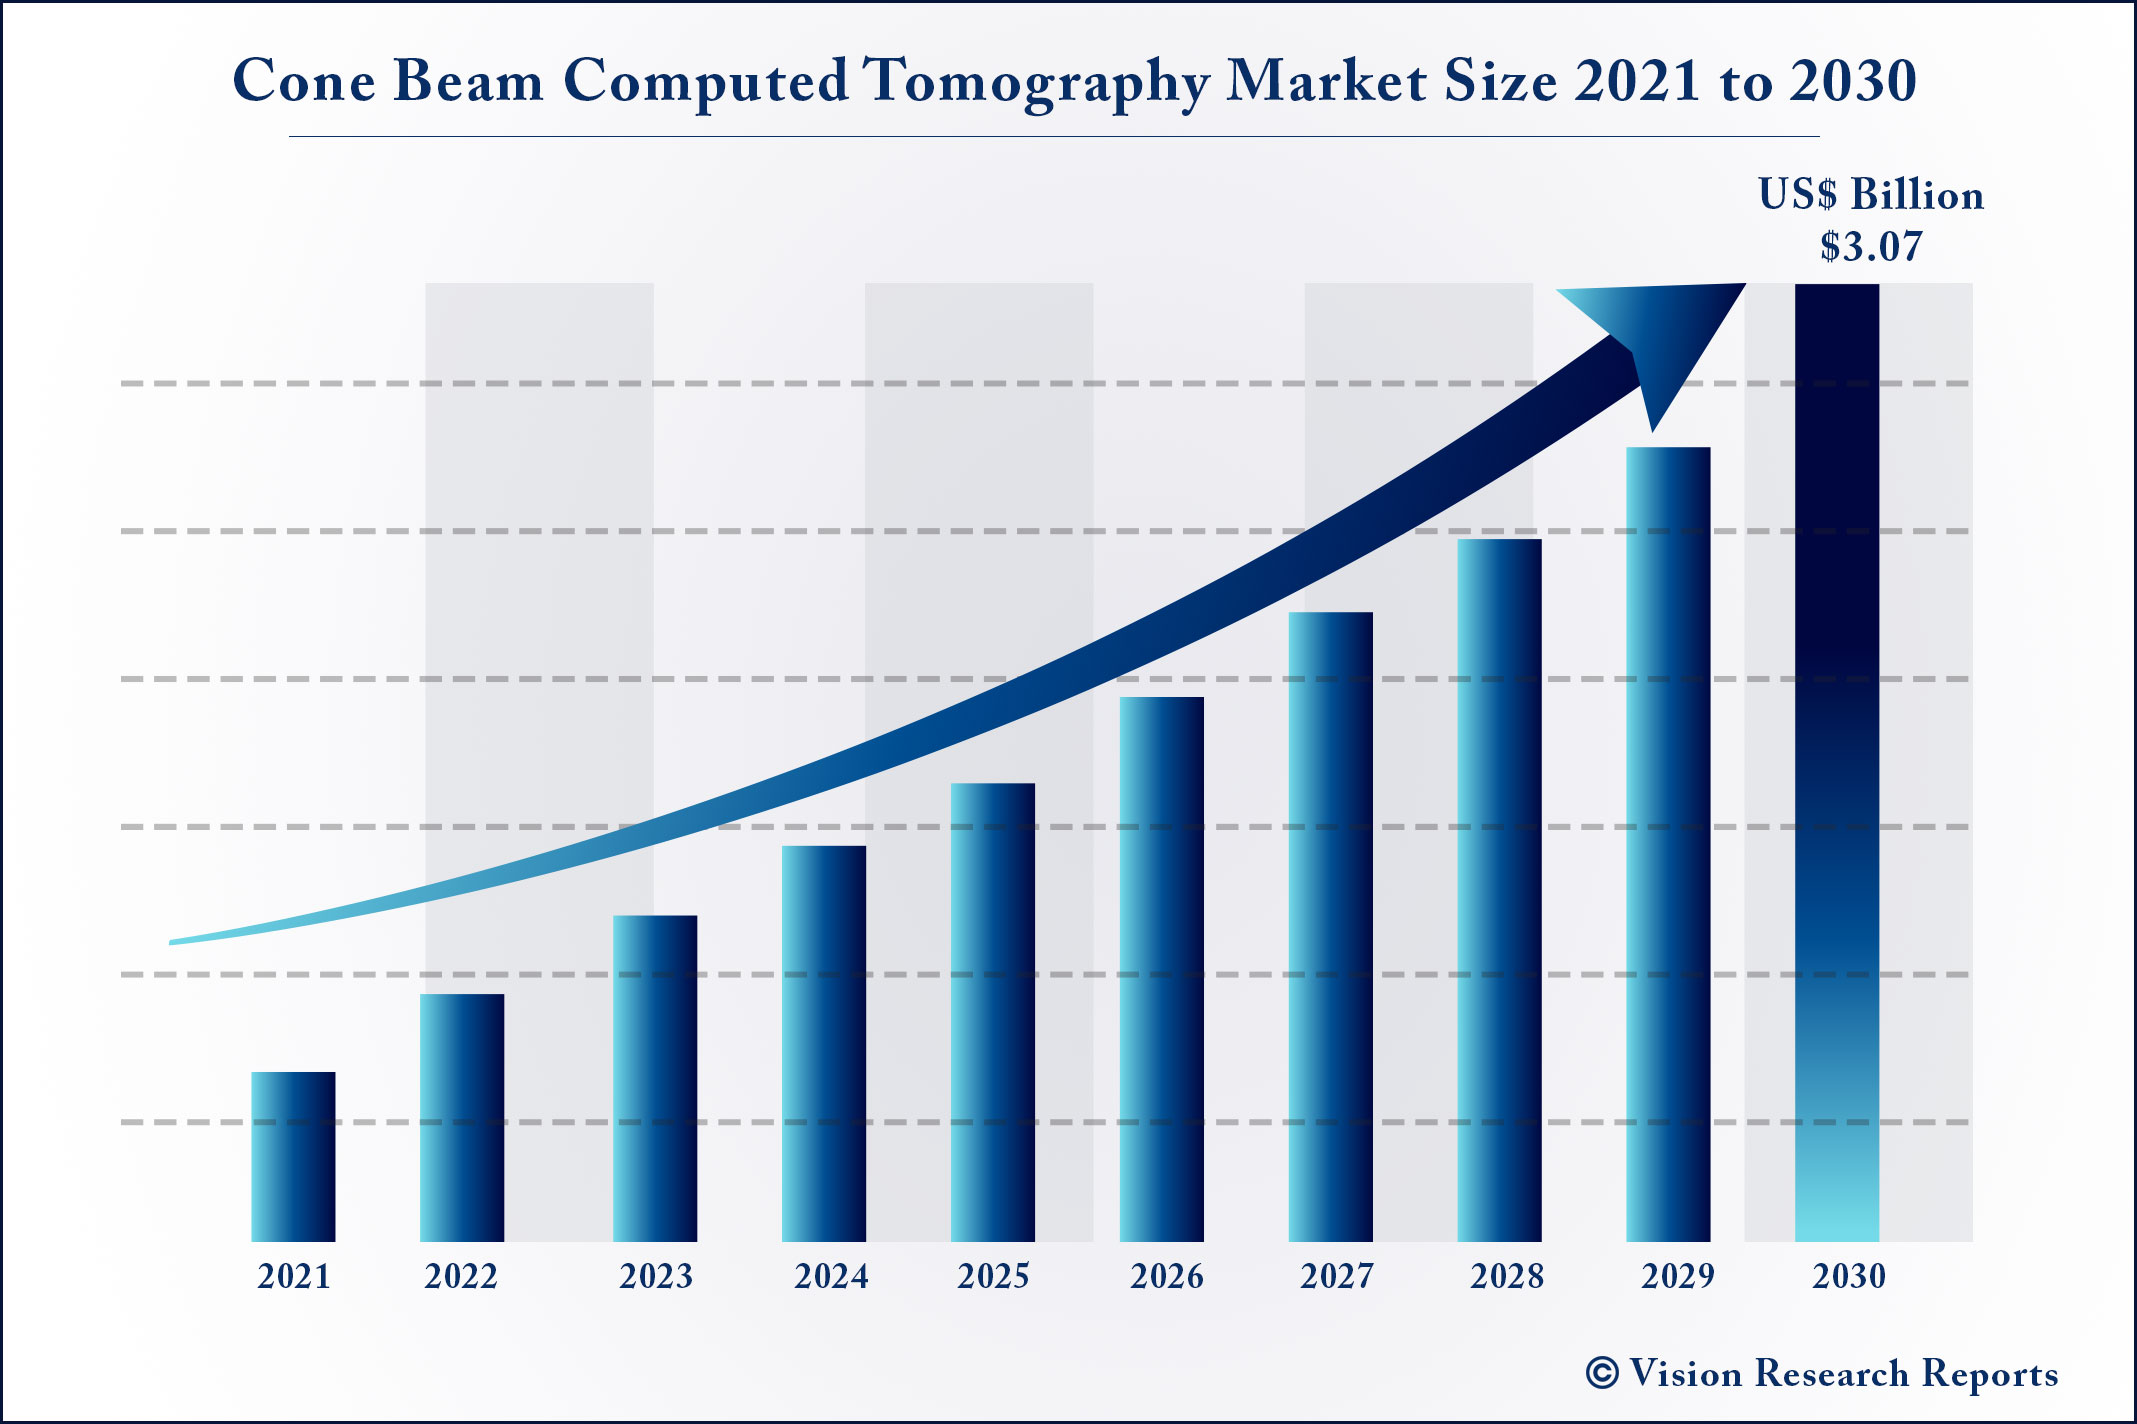 Cone Beam Computed Tomography Market Size 2021 to 2030